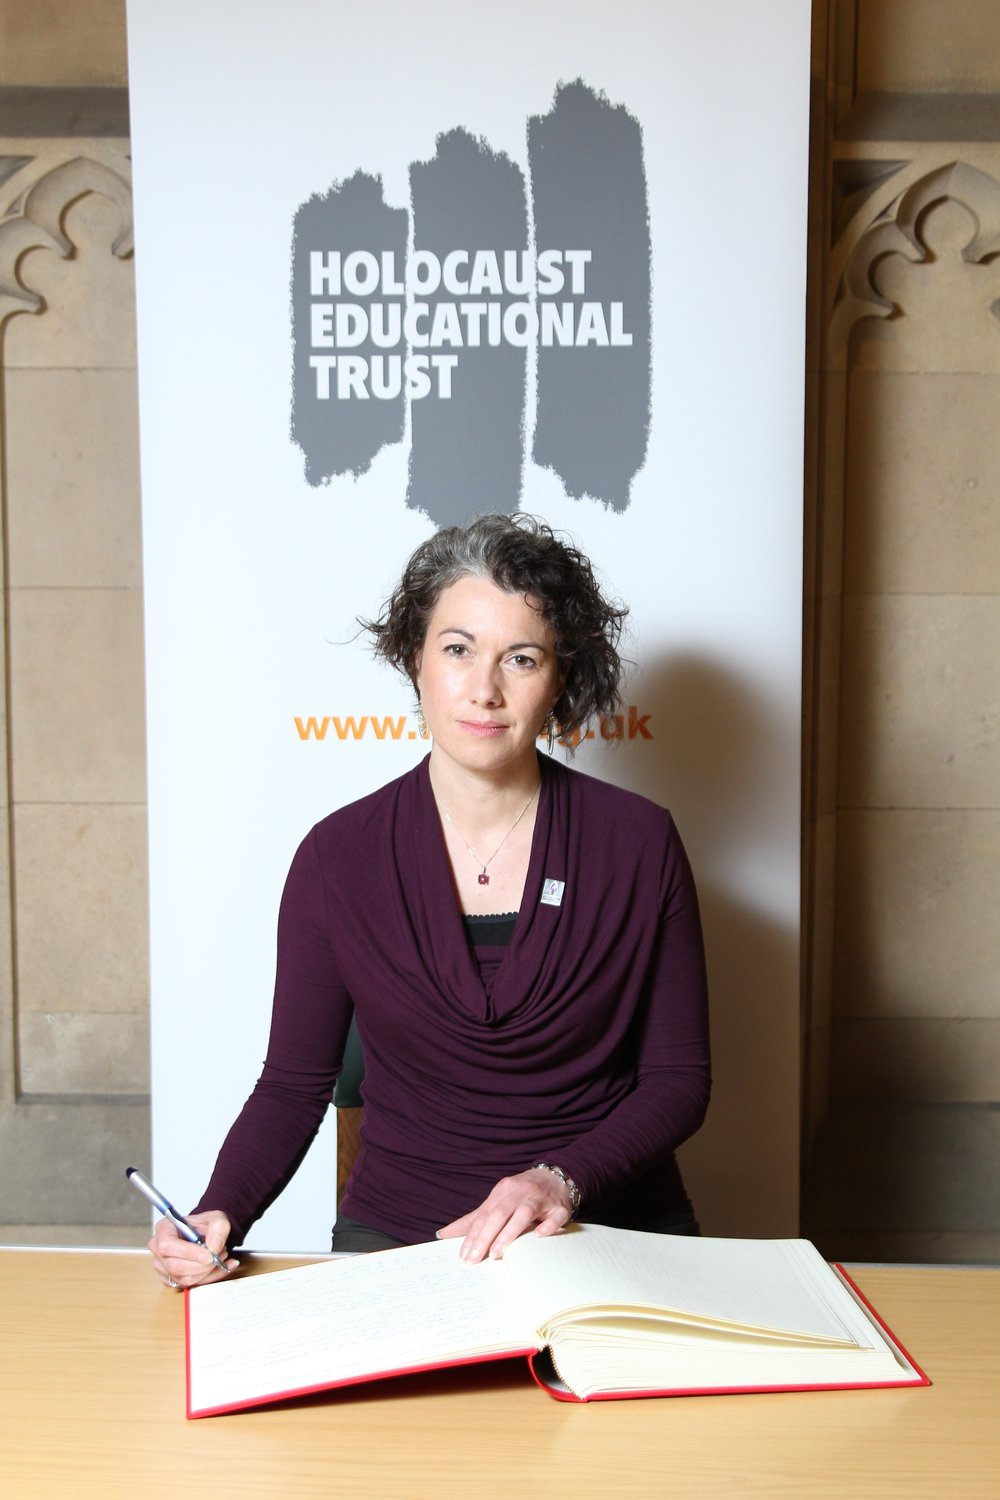 Sarah-Champion-Holocaust-Signing-Copy.jpg